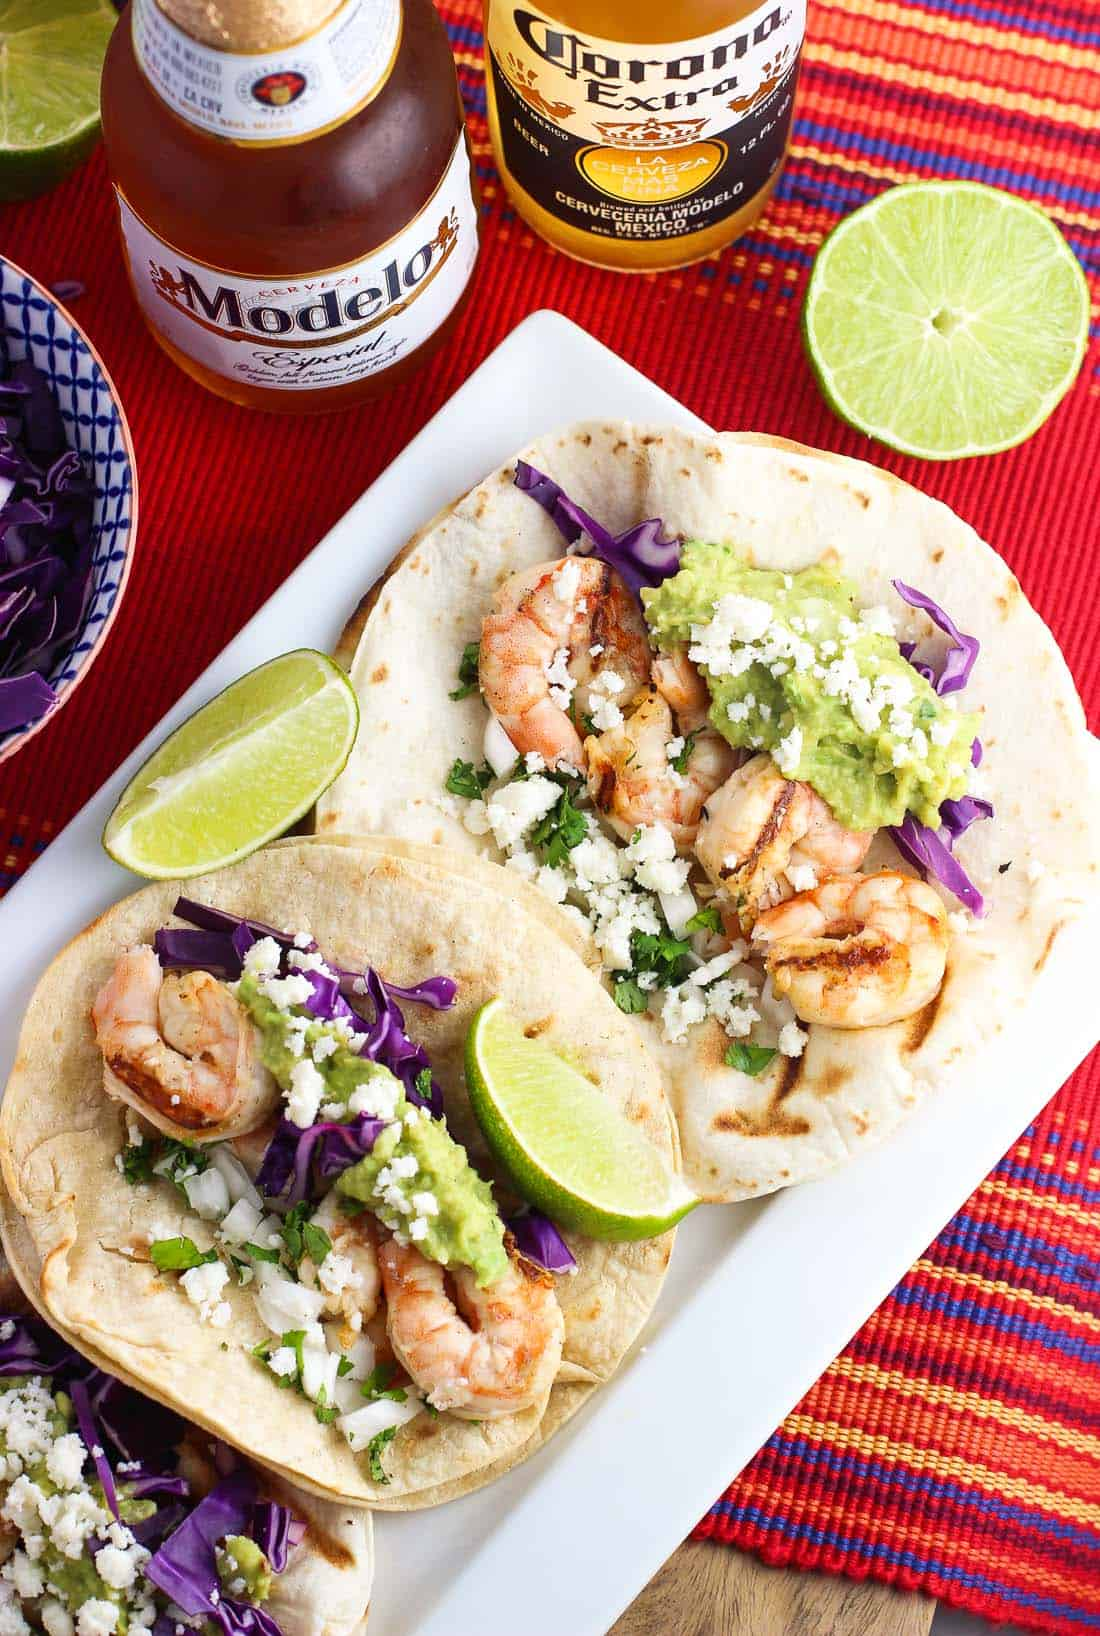 Blackened shrimp street tacos feature quickly marinated lime, honey, and beer shrimp that are grilled to juicy perfection. Just add your favorite toppings to make this perfect Cinco de Mayo meal your own!